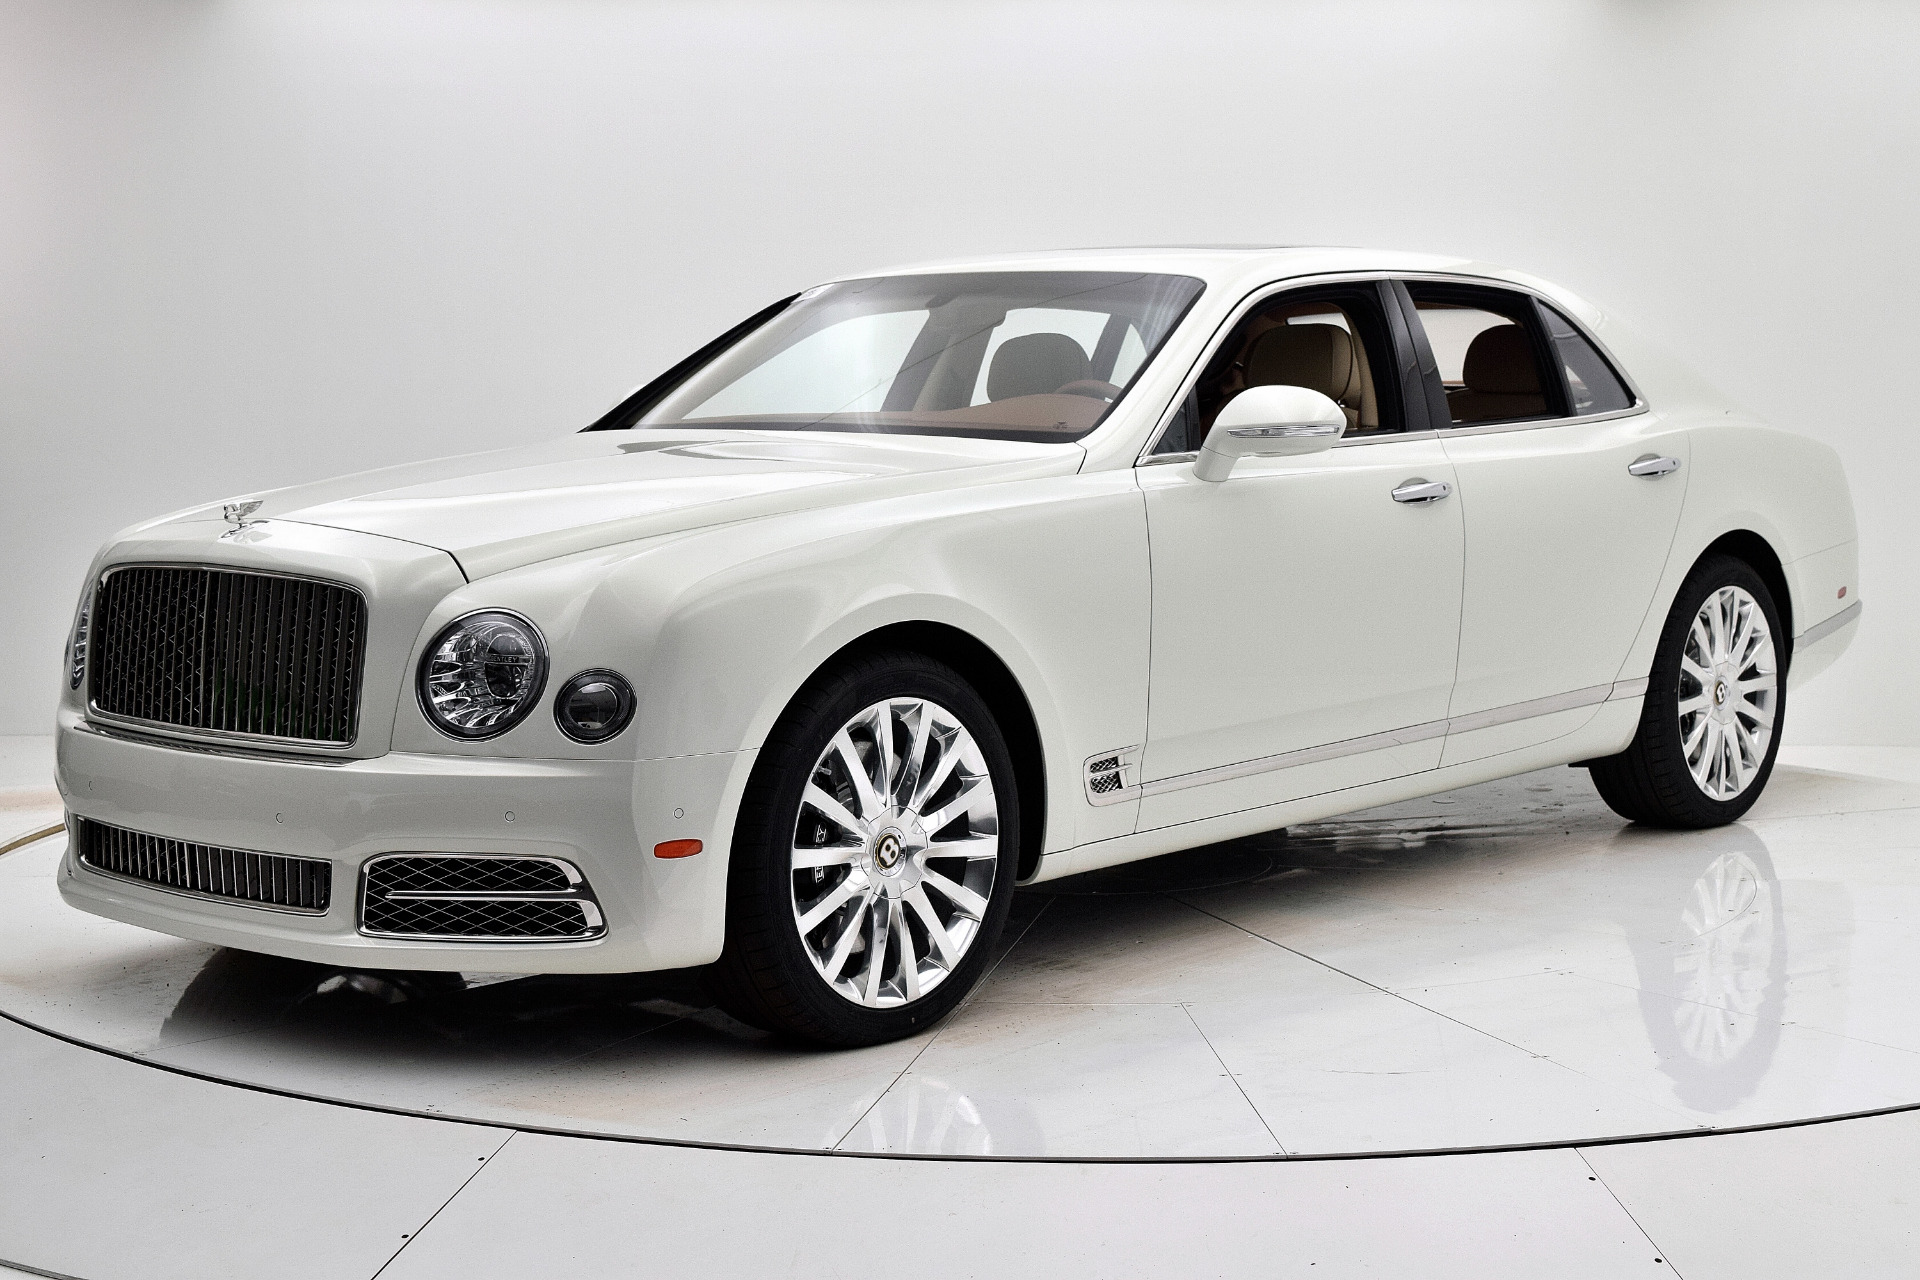 Used 2019 Bentley Mulsanne for sale $229,880 at F.C. Kerbeck Aston Martin in Palmyra NJ 08065 2